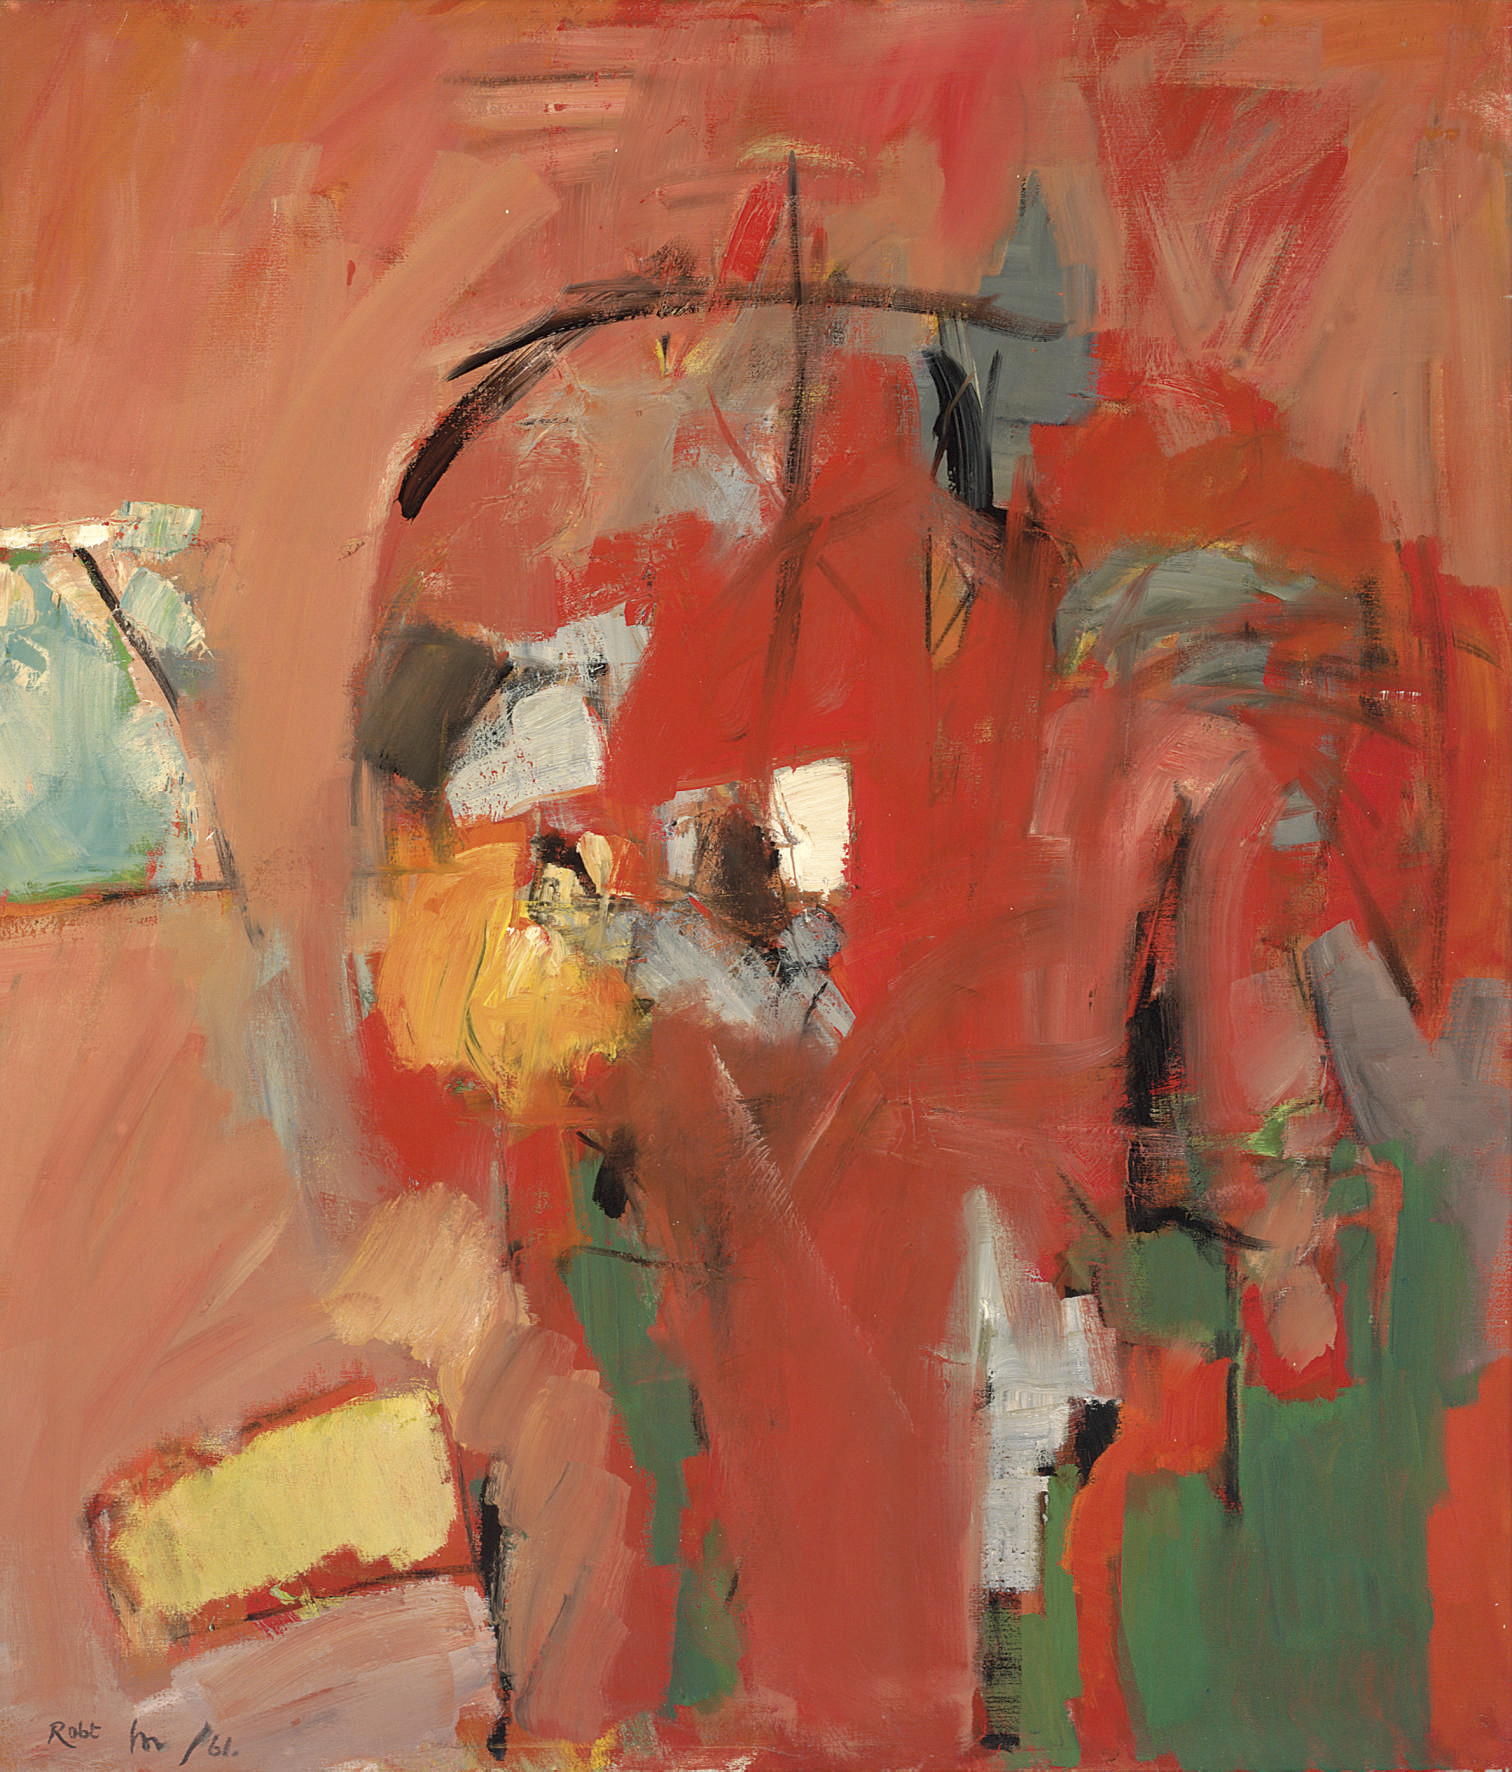 Red and green figuration